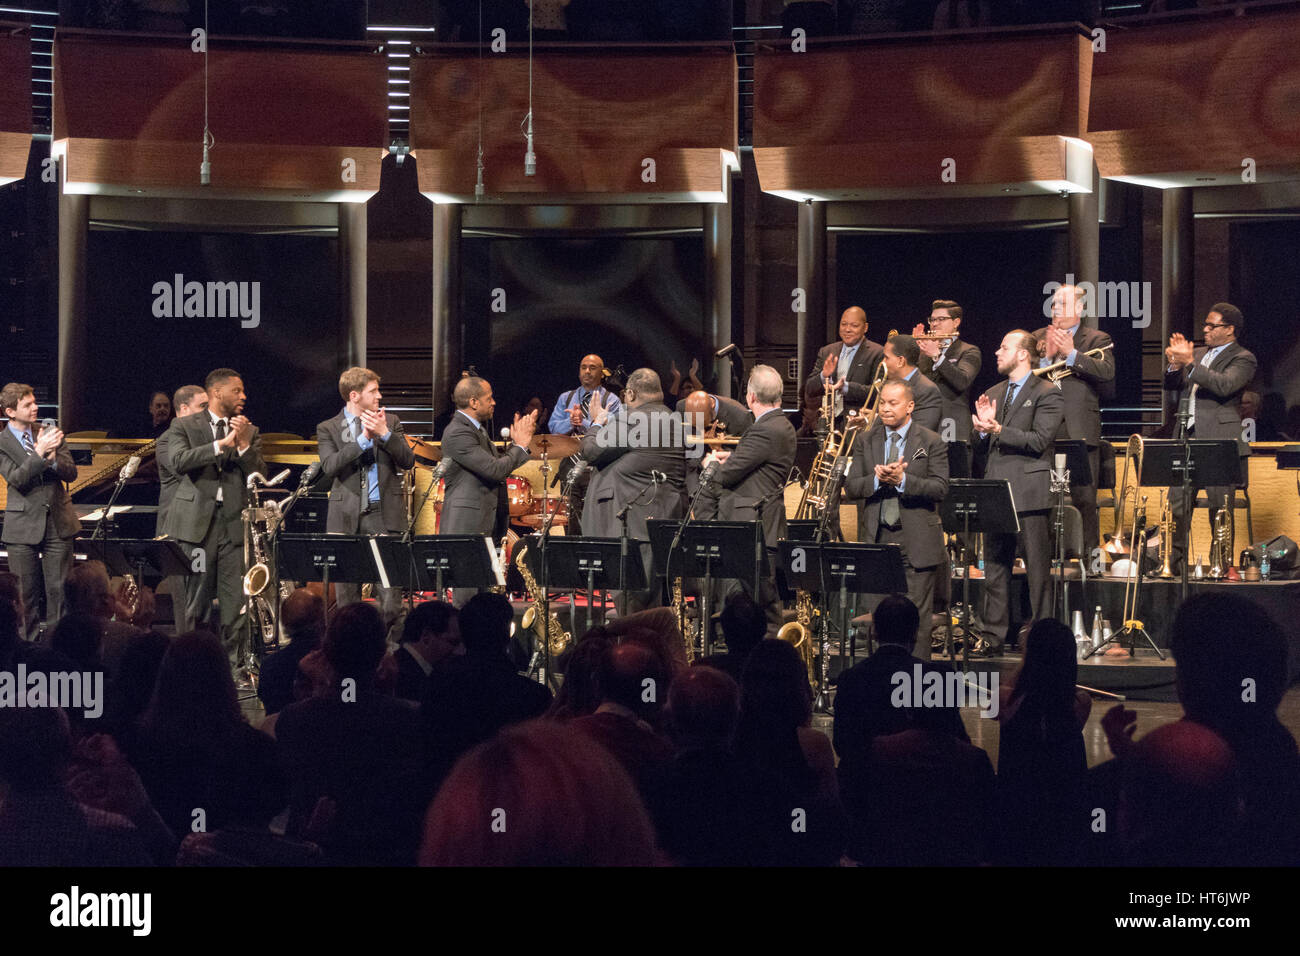 Jazz of the '50s: Overflowing with Style concert, Jazz at Lincoln Center orchestra, Chris Crenshaw, music director, - Stock Image